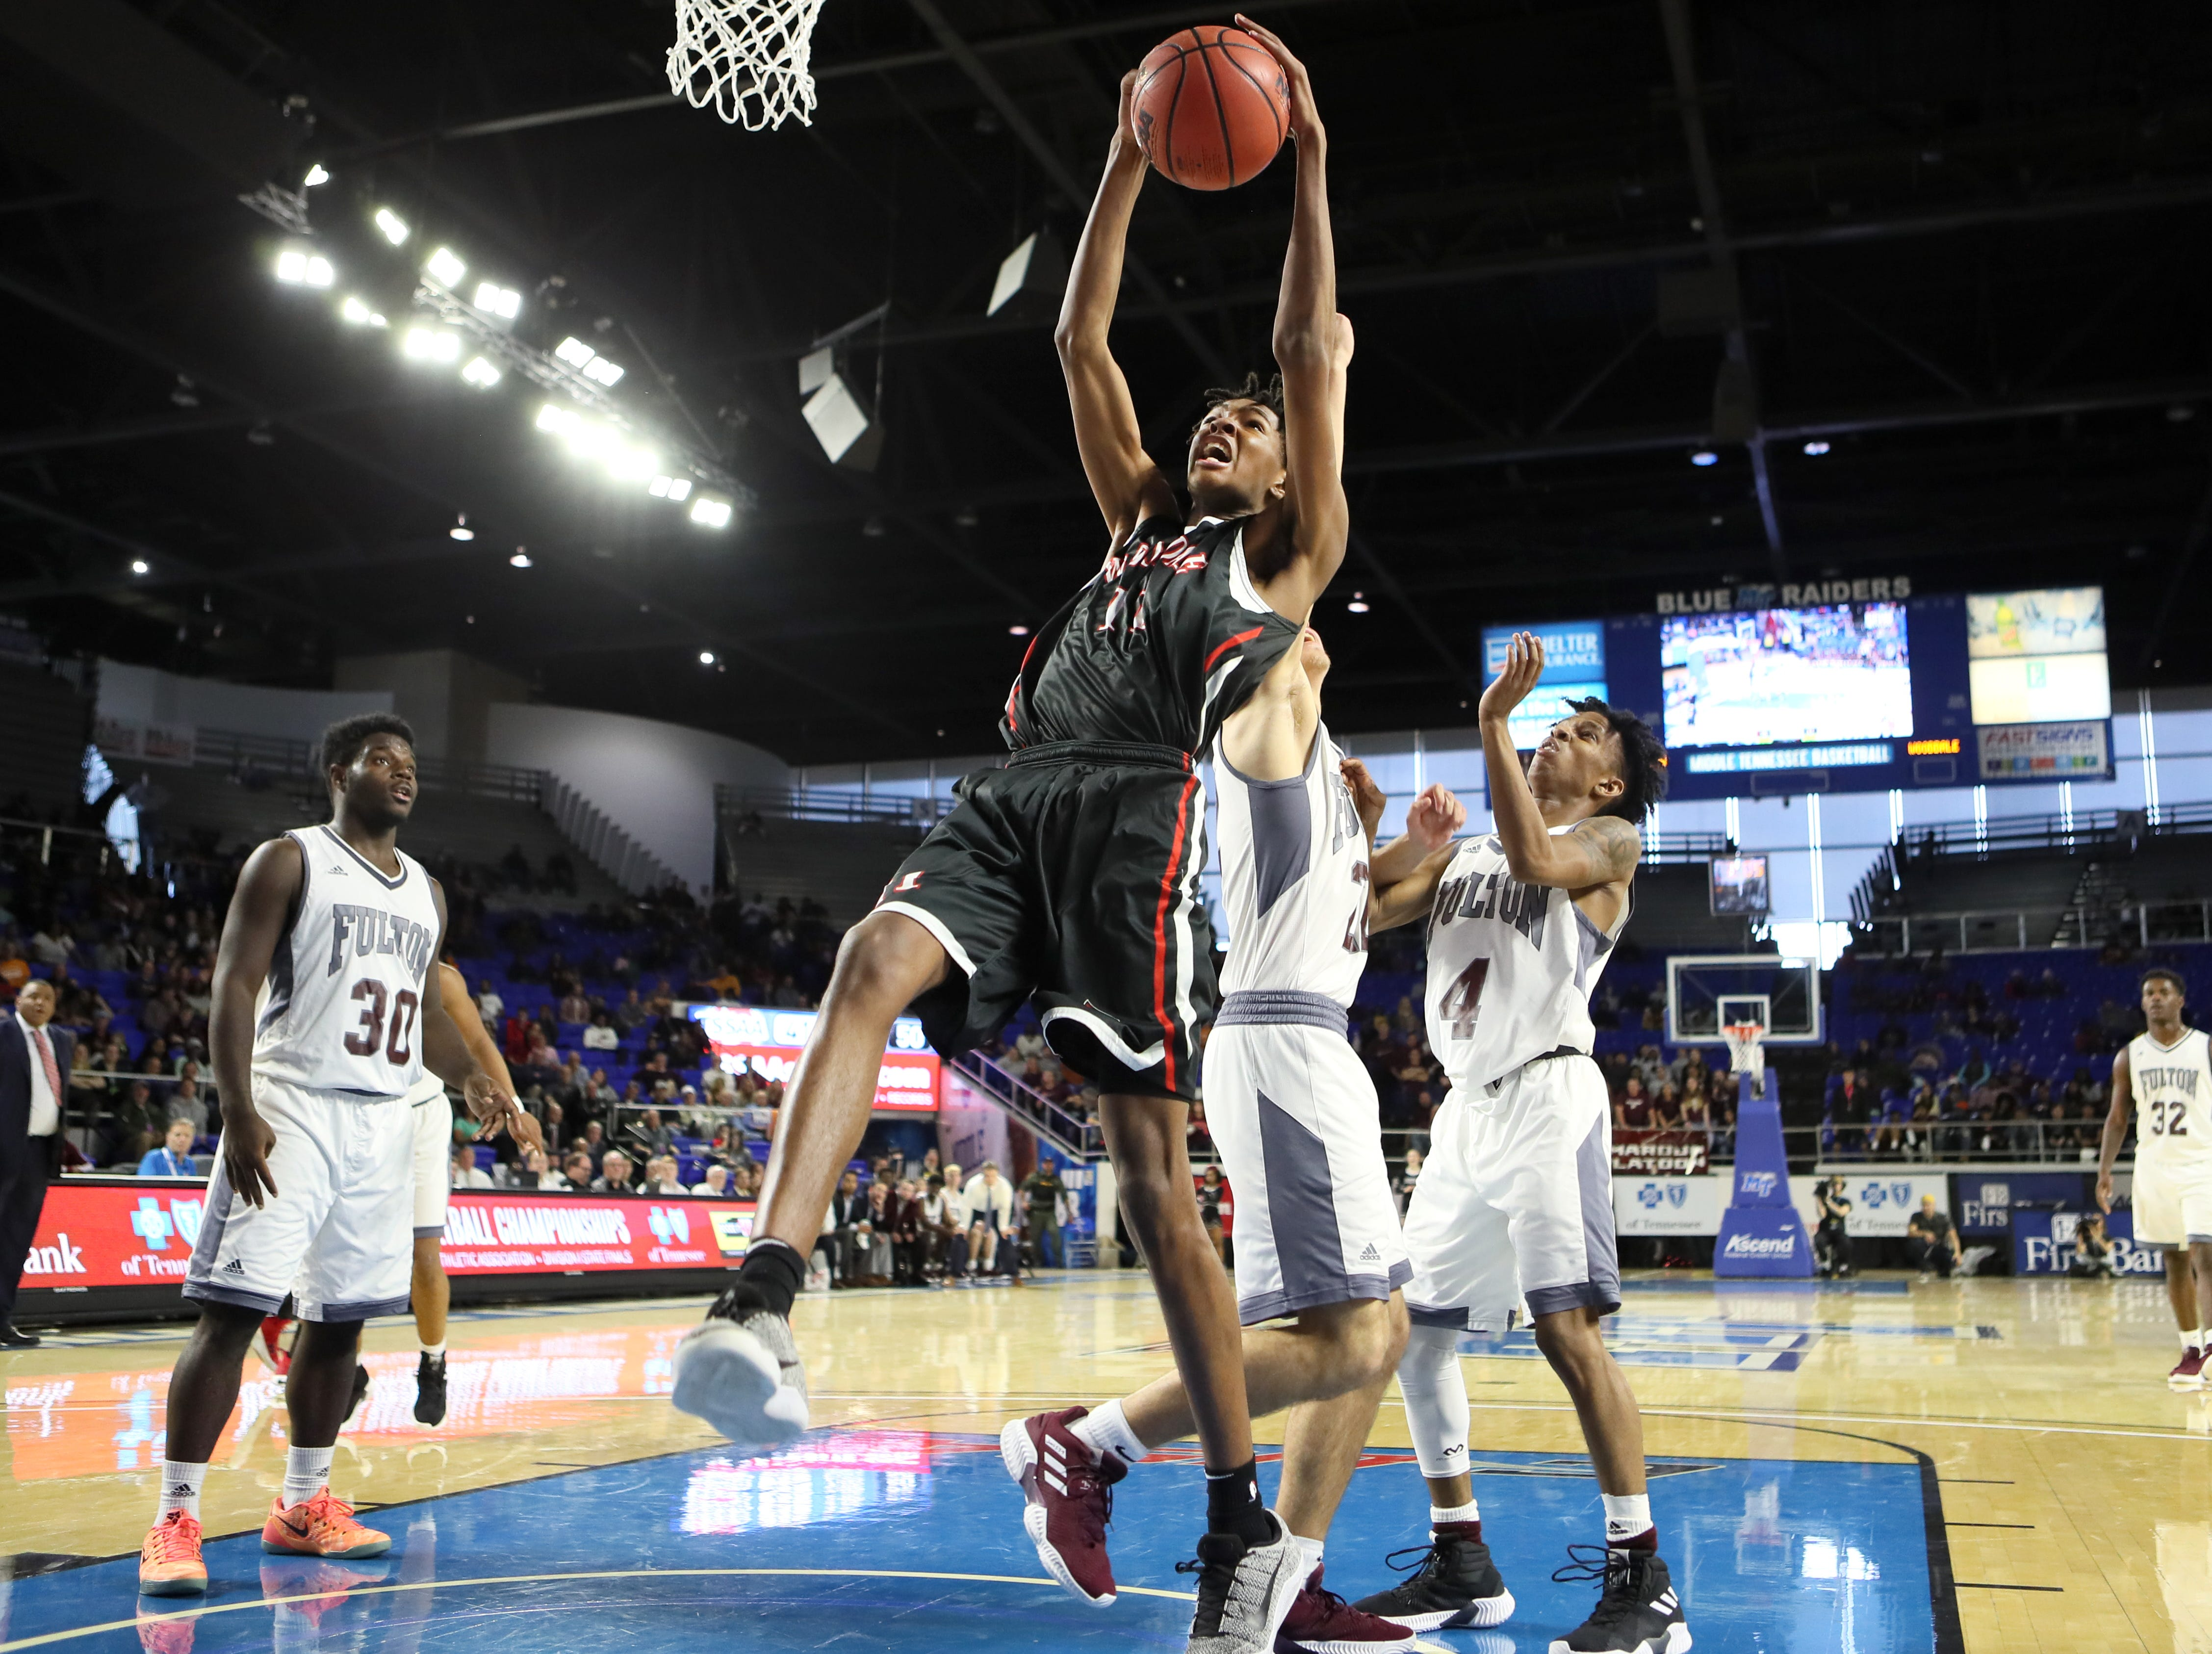 Wooddale's Johnathan Lawson grabs a rebound over Fulton during the Class AA boys basketball state championship game at the Murphy Center in Murfreesboro, Tenn. on Saturday, March 16, 2019.